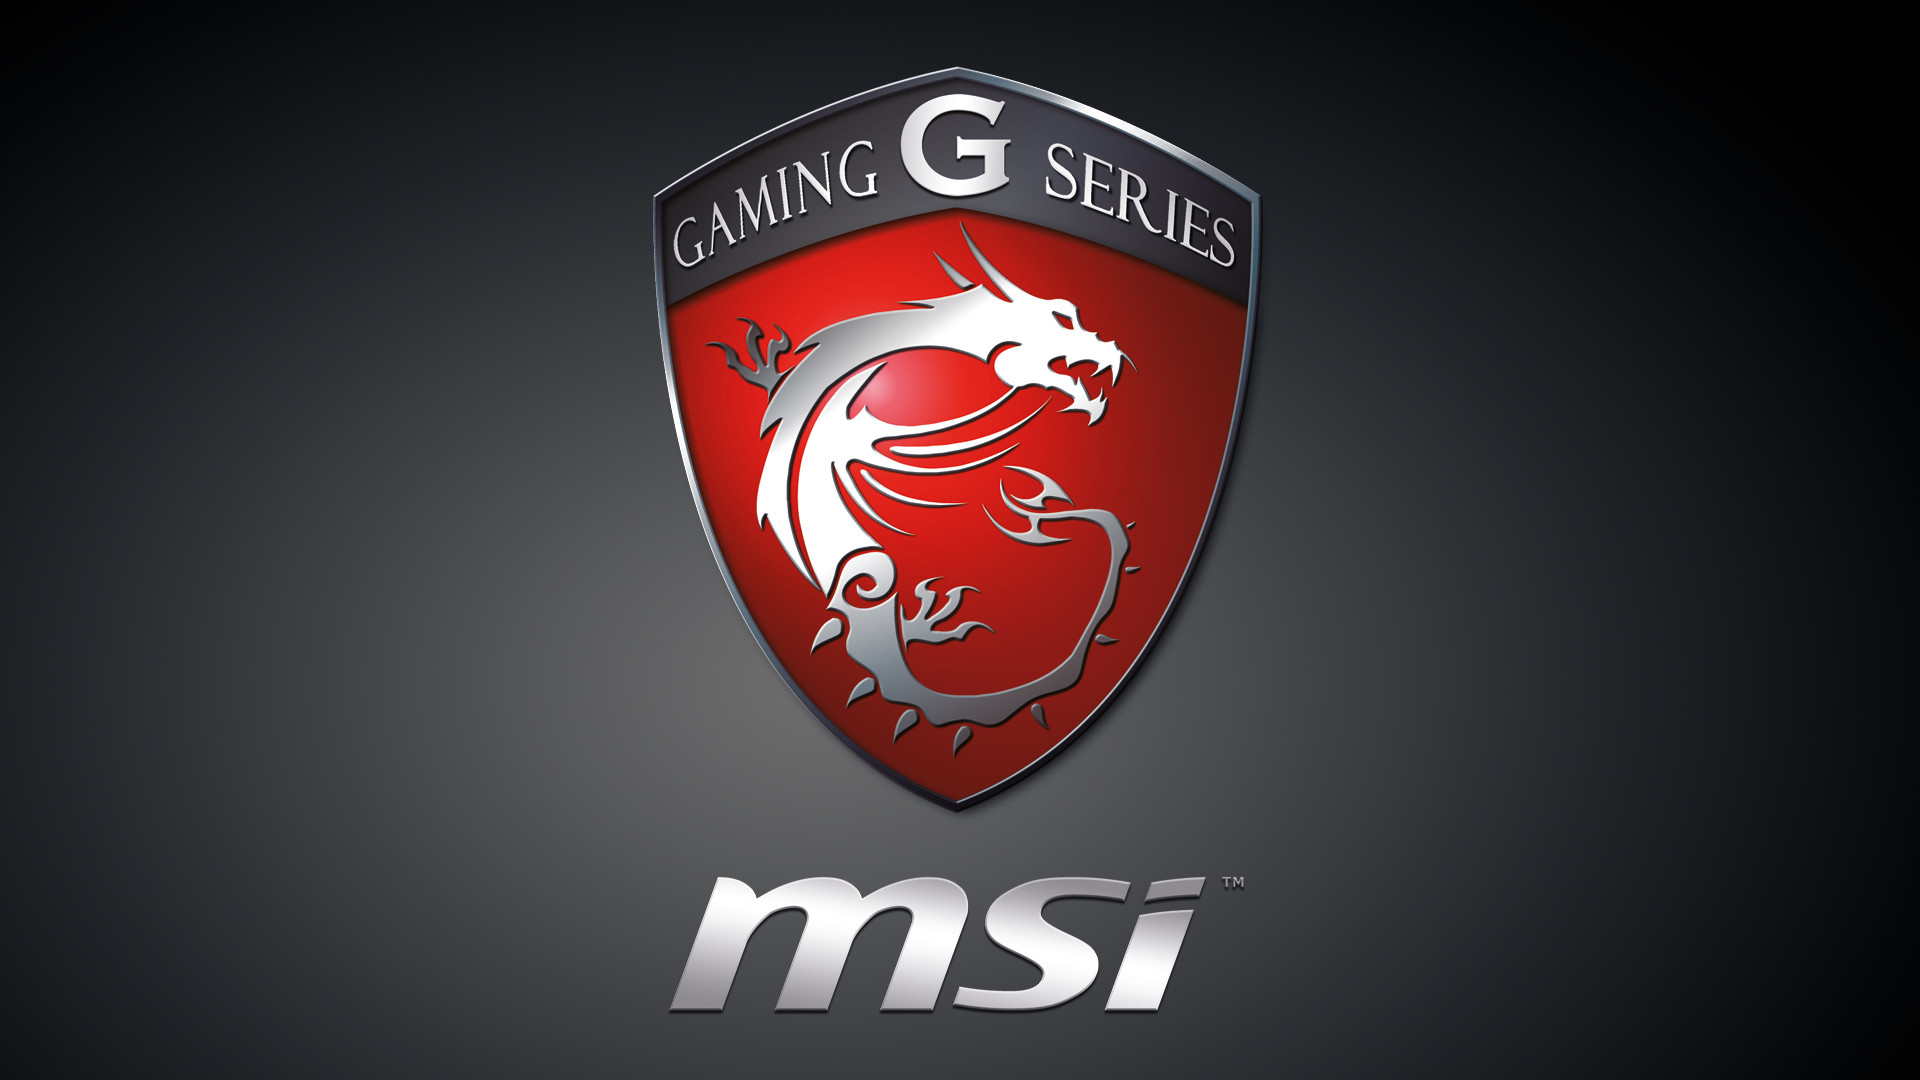 1920x1080 Related image with Like 1080p Msi Wallpaper  Msi Wallpaper Msi  Dragon Wallpaper